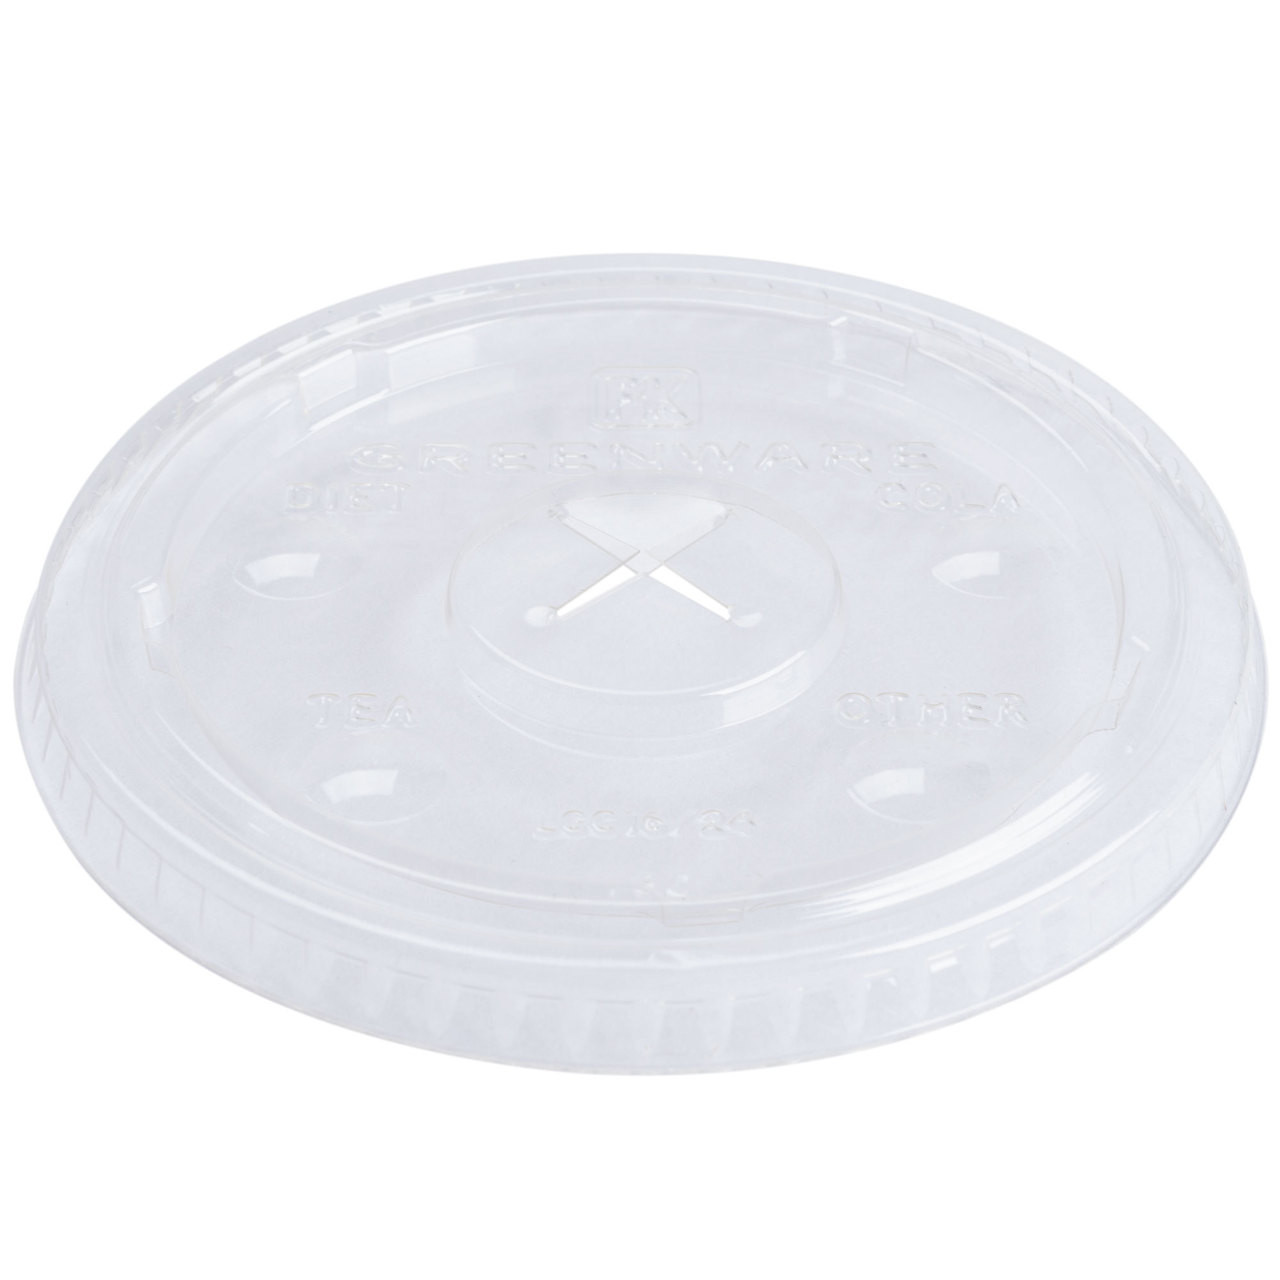 Flat Lid for 16pz and 24oz cold cups